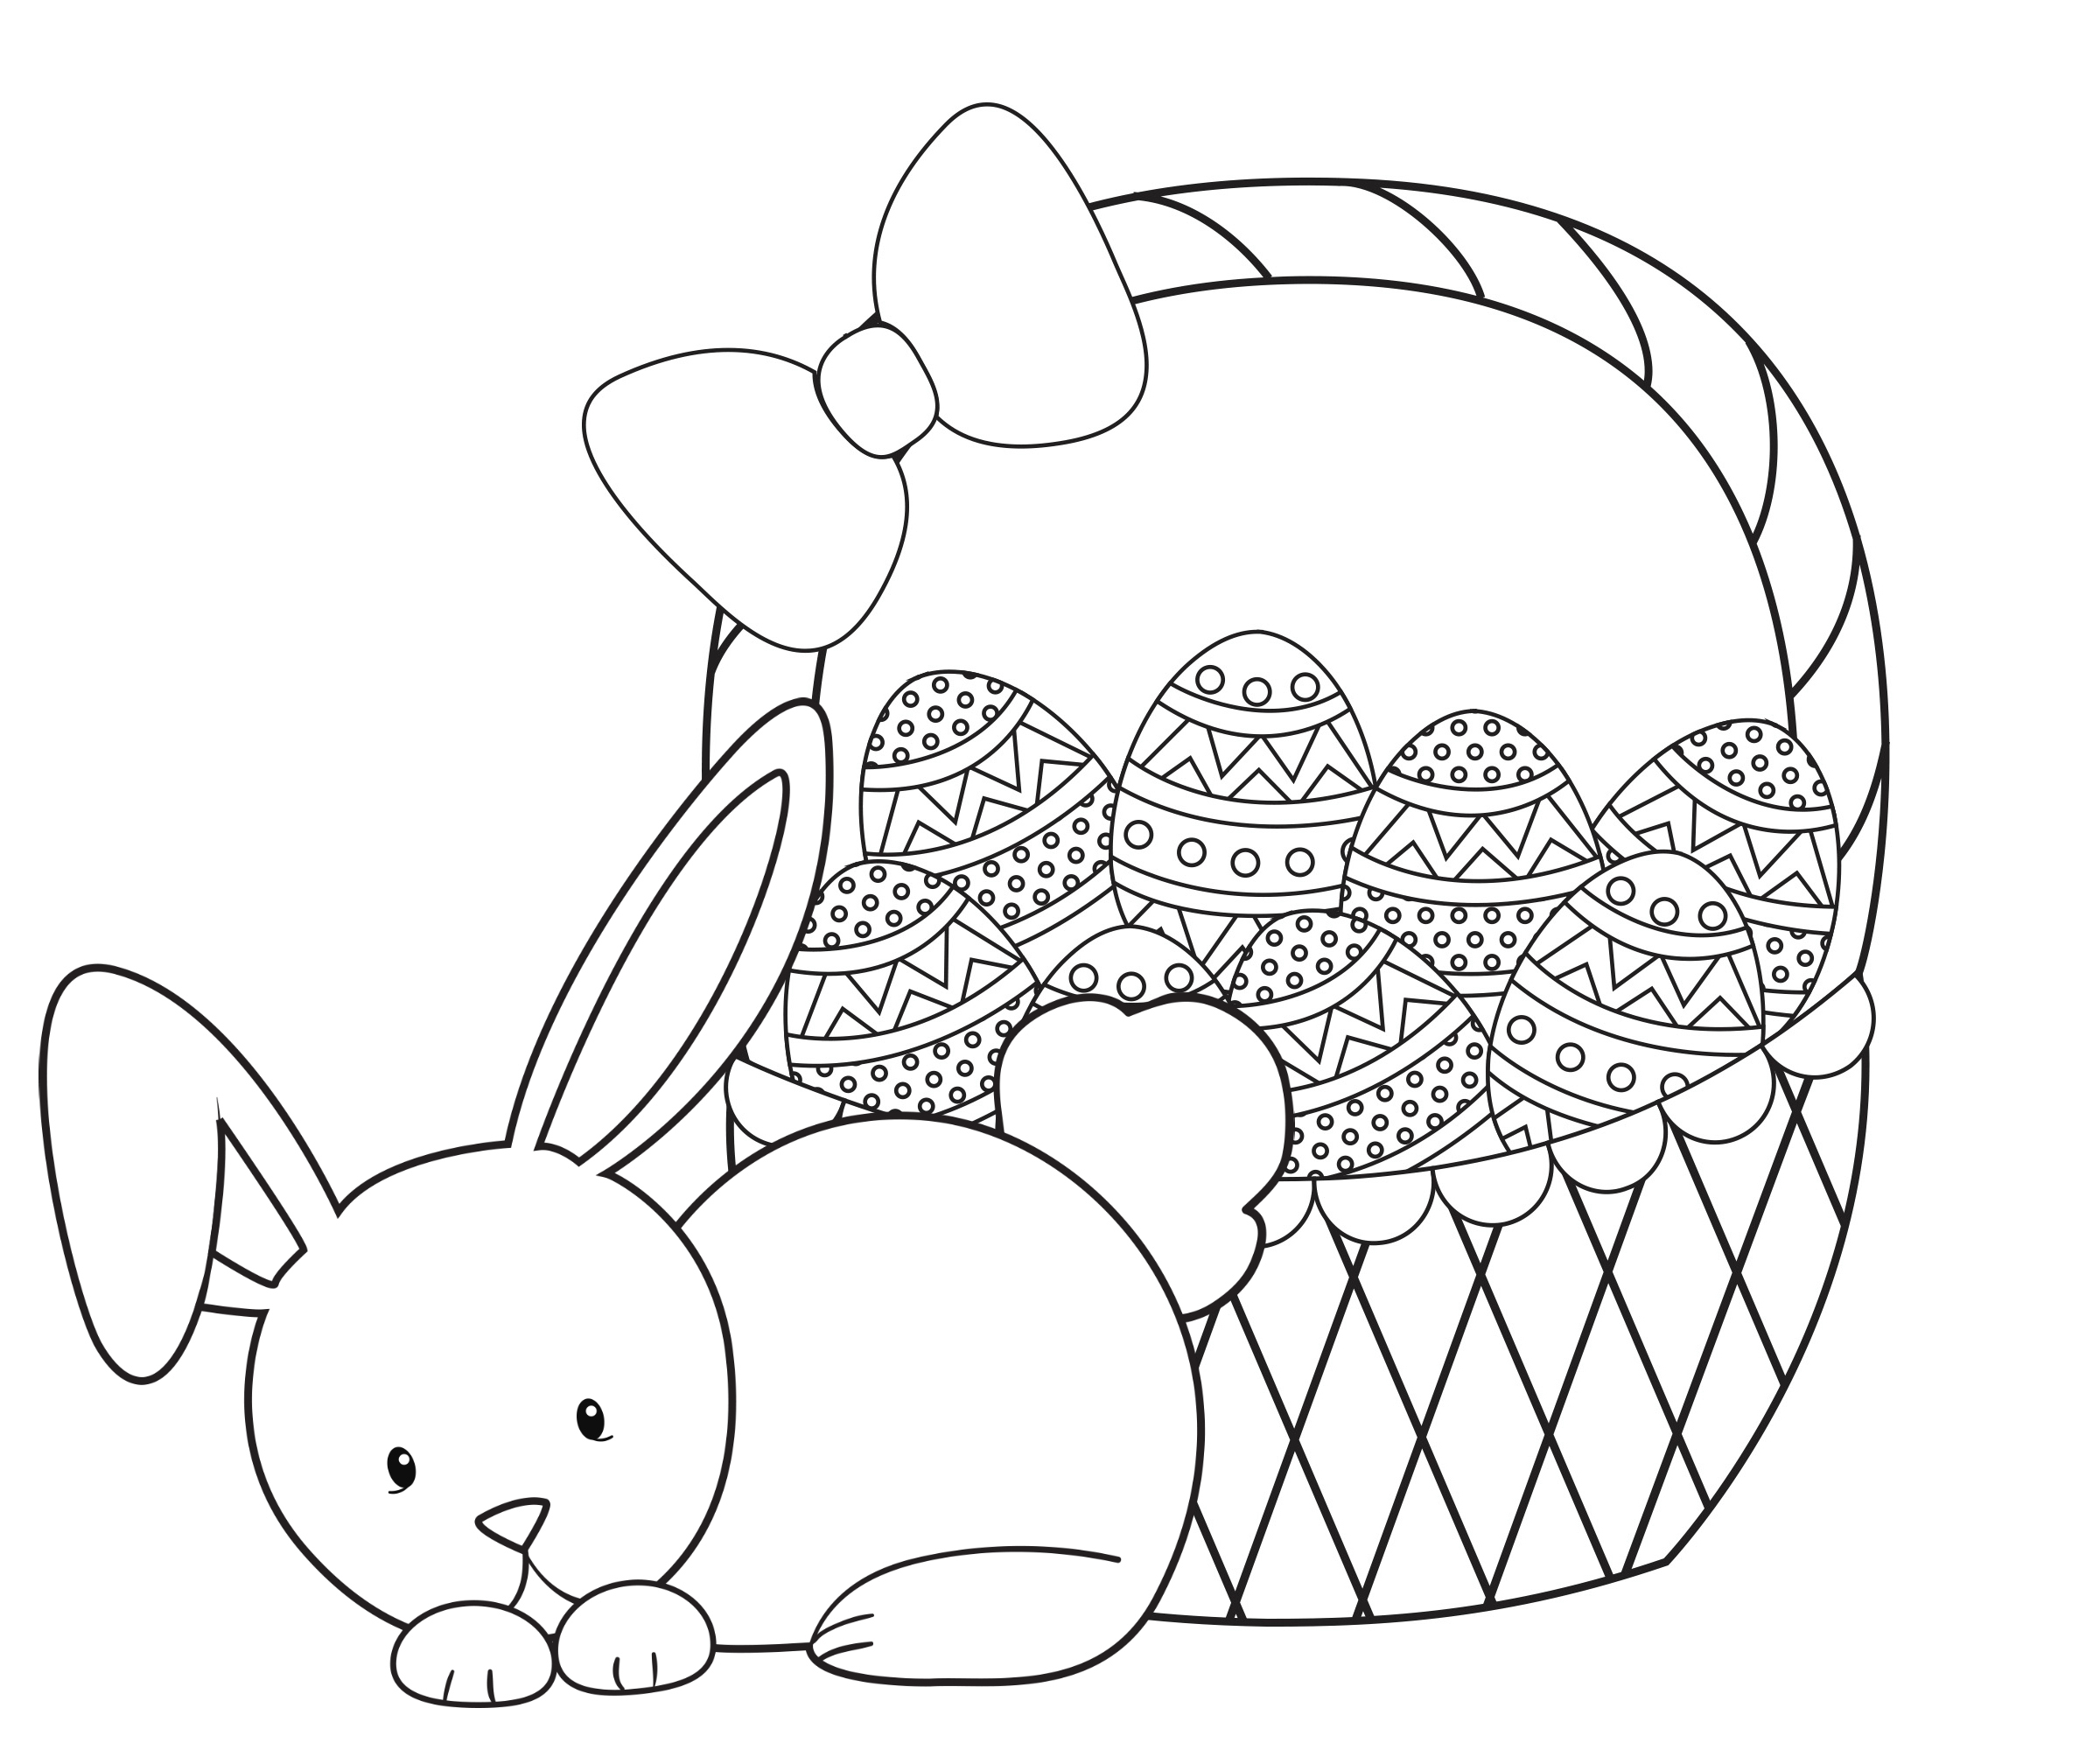 Easter Coloring Pages for Kids Crazy Little Projects Printable Of Easter Coloring Printable Easter Coloring Pages Coloring Gallery